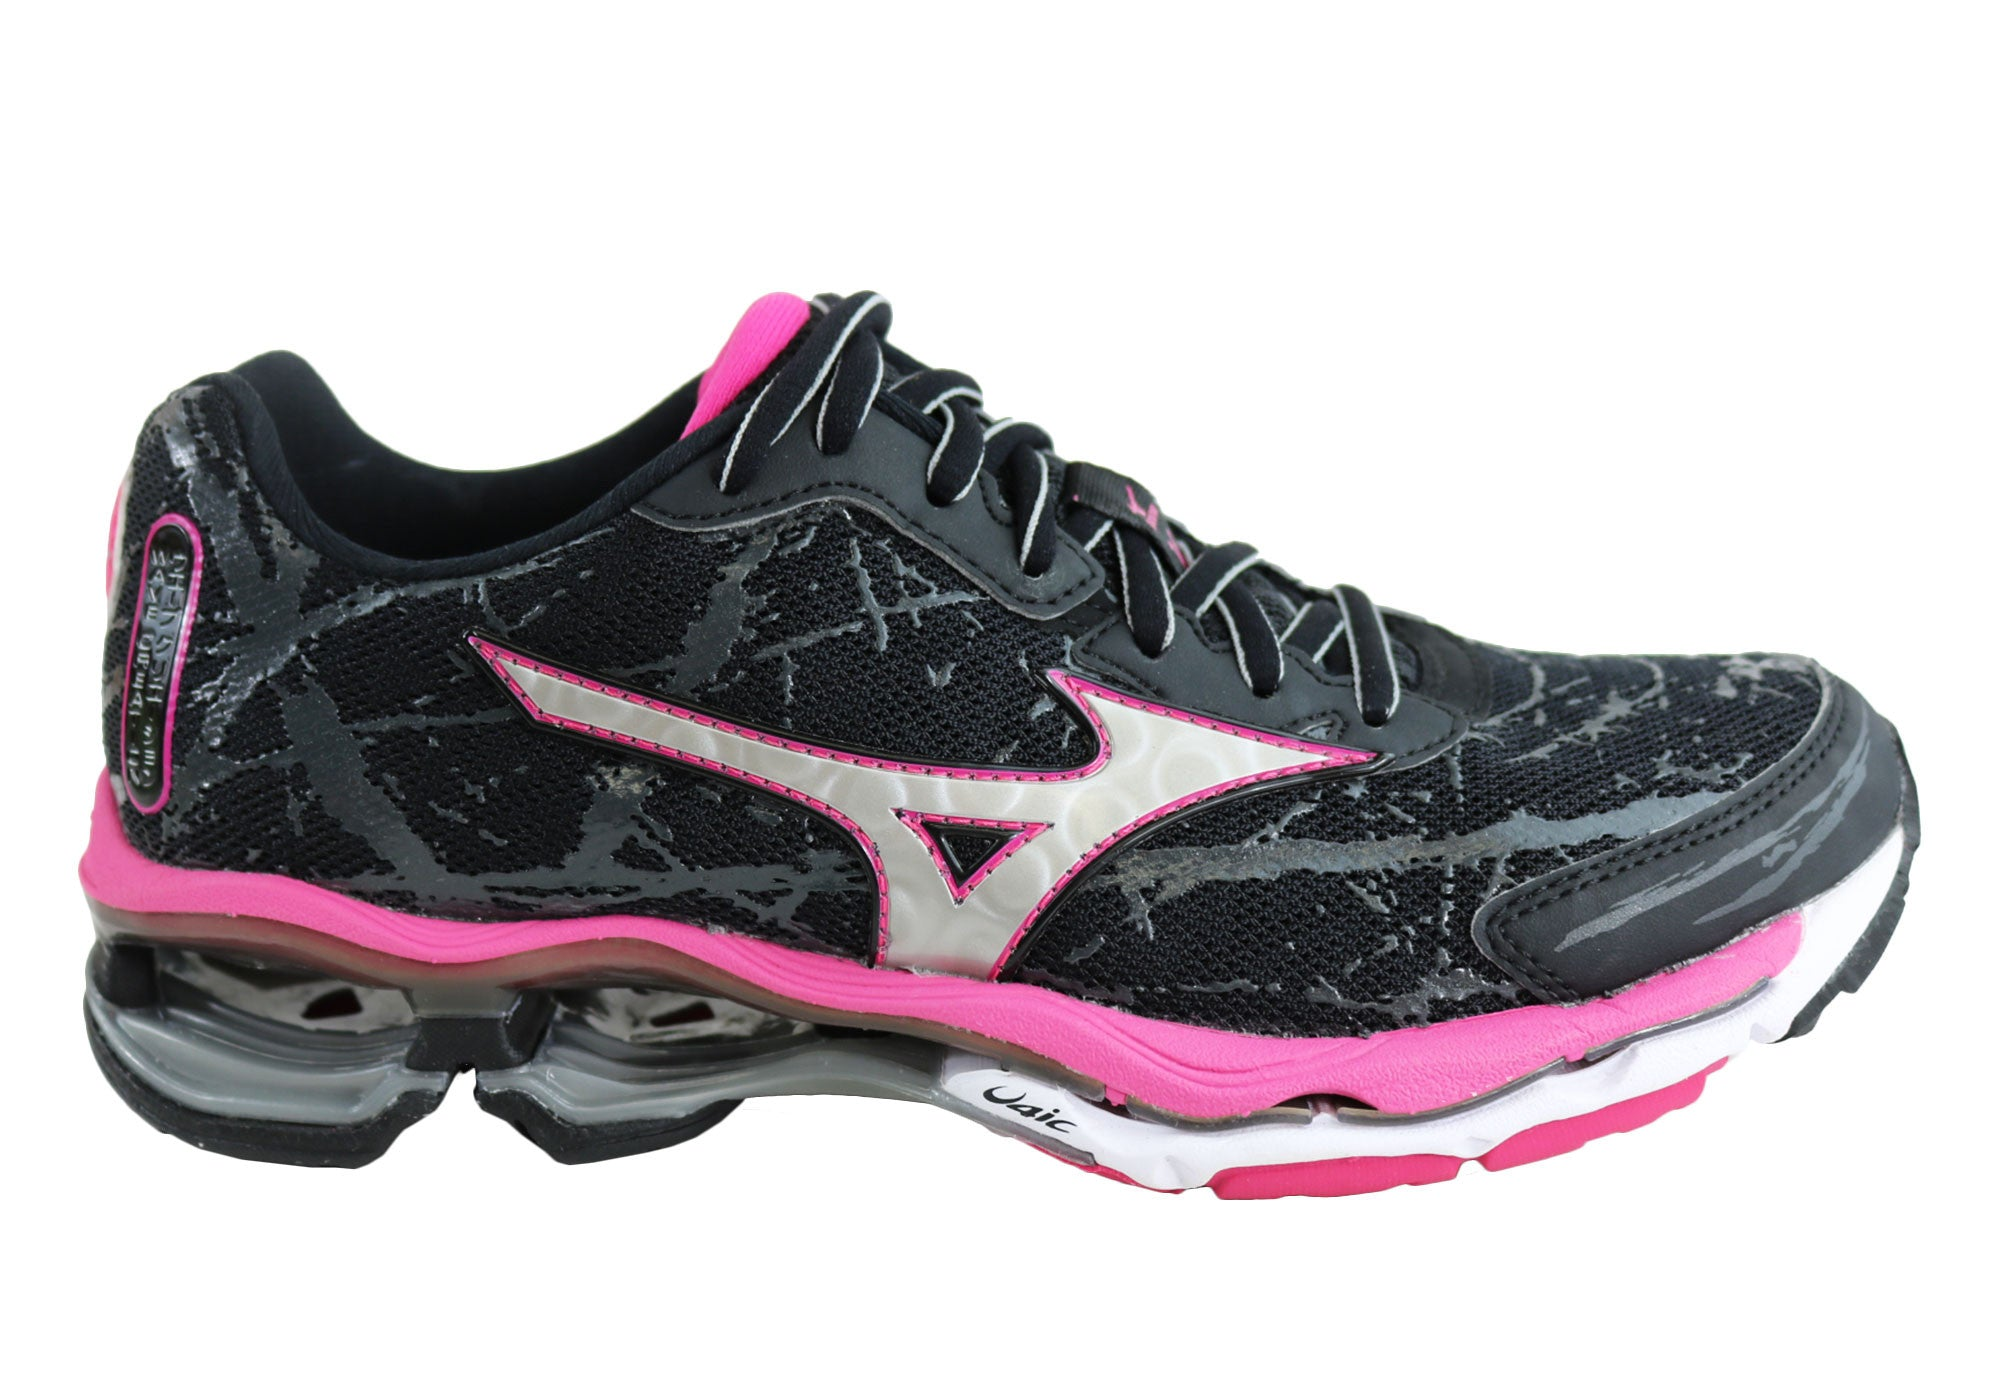 NEW-MIZUNO-WOMENS-WAVE-CREATION-16-PREMIUM-CUSHIONED-RUNNING-SPORT-SHOES